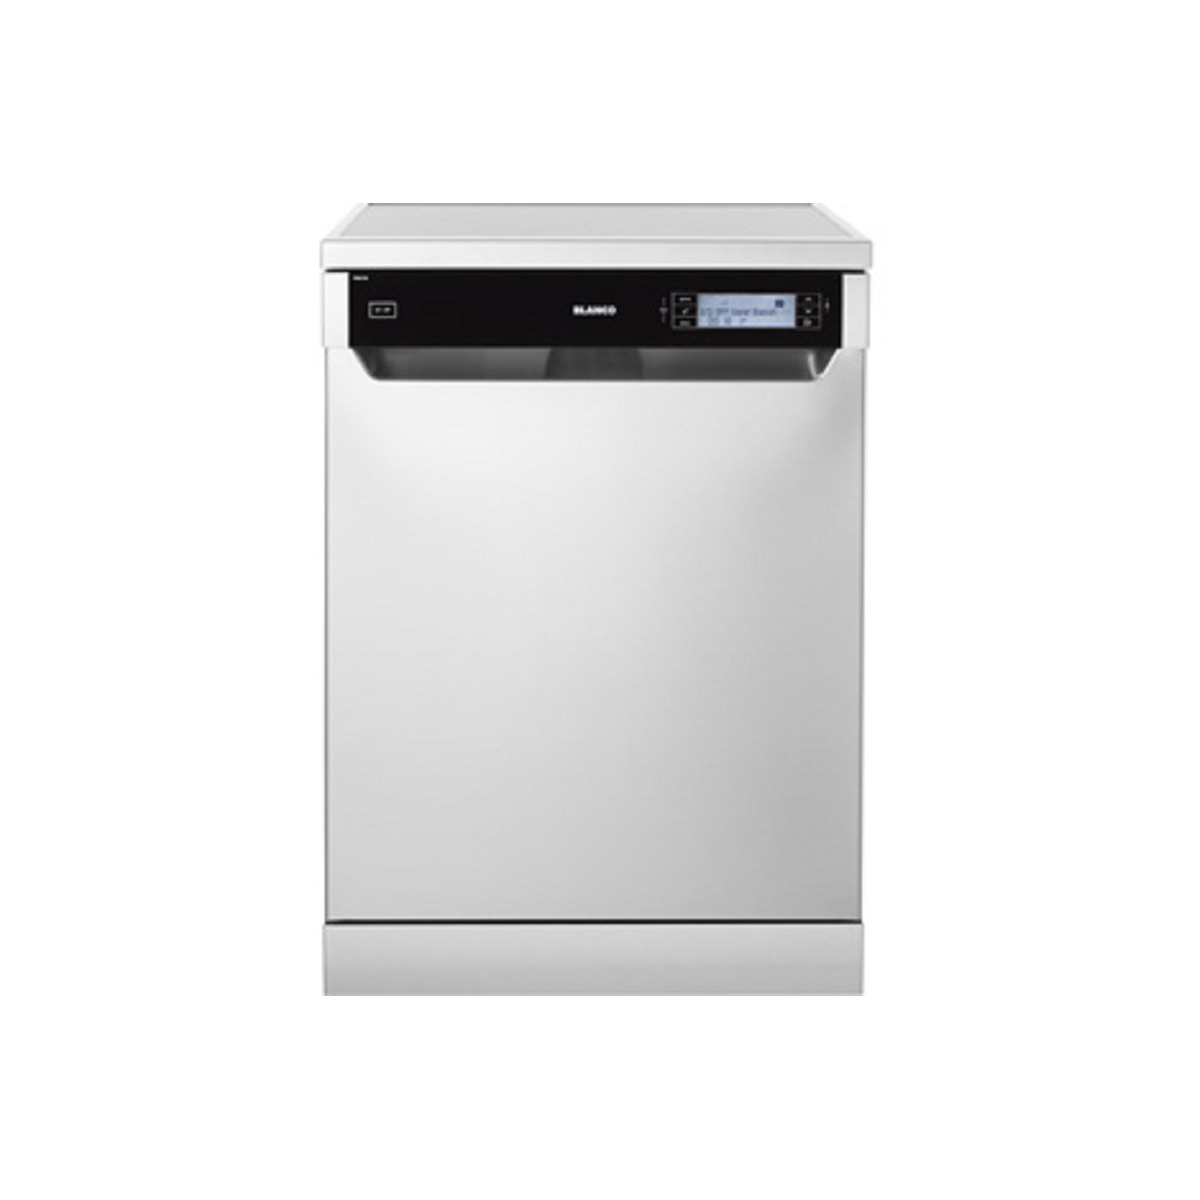 Blanco Freestanding Dishwasher BDW4510X